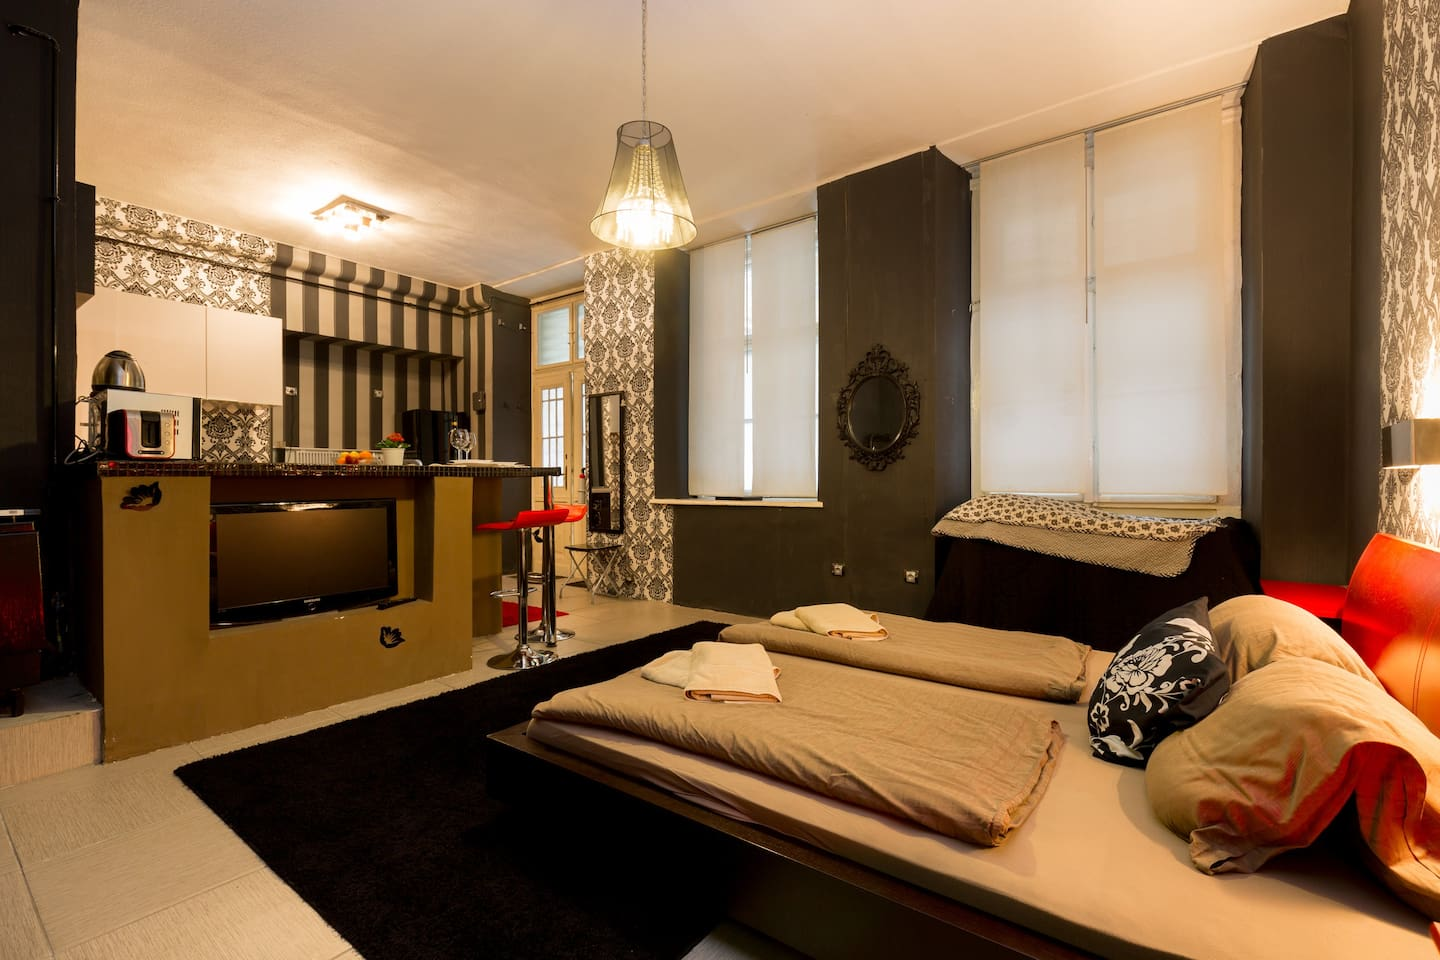 Andrassy Thai Hotel Apartment Dora Apartments For Rent In Budapest Budapest Hungary